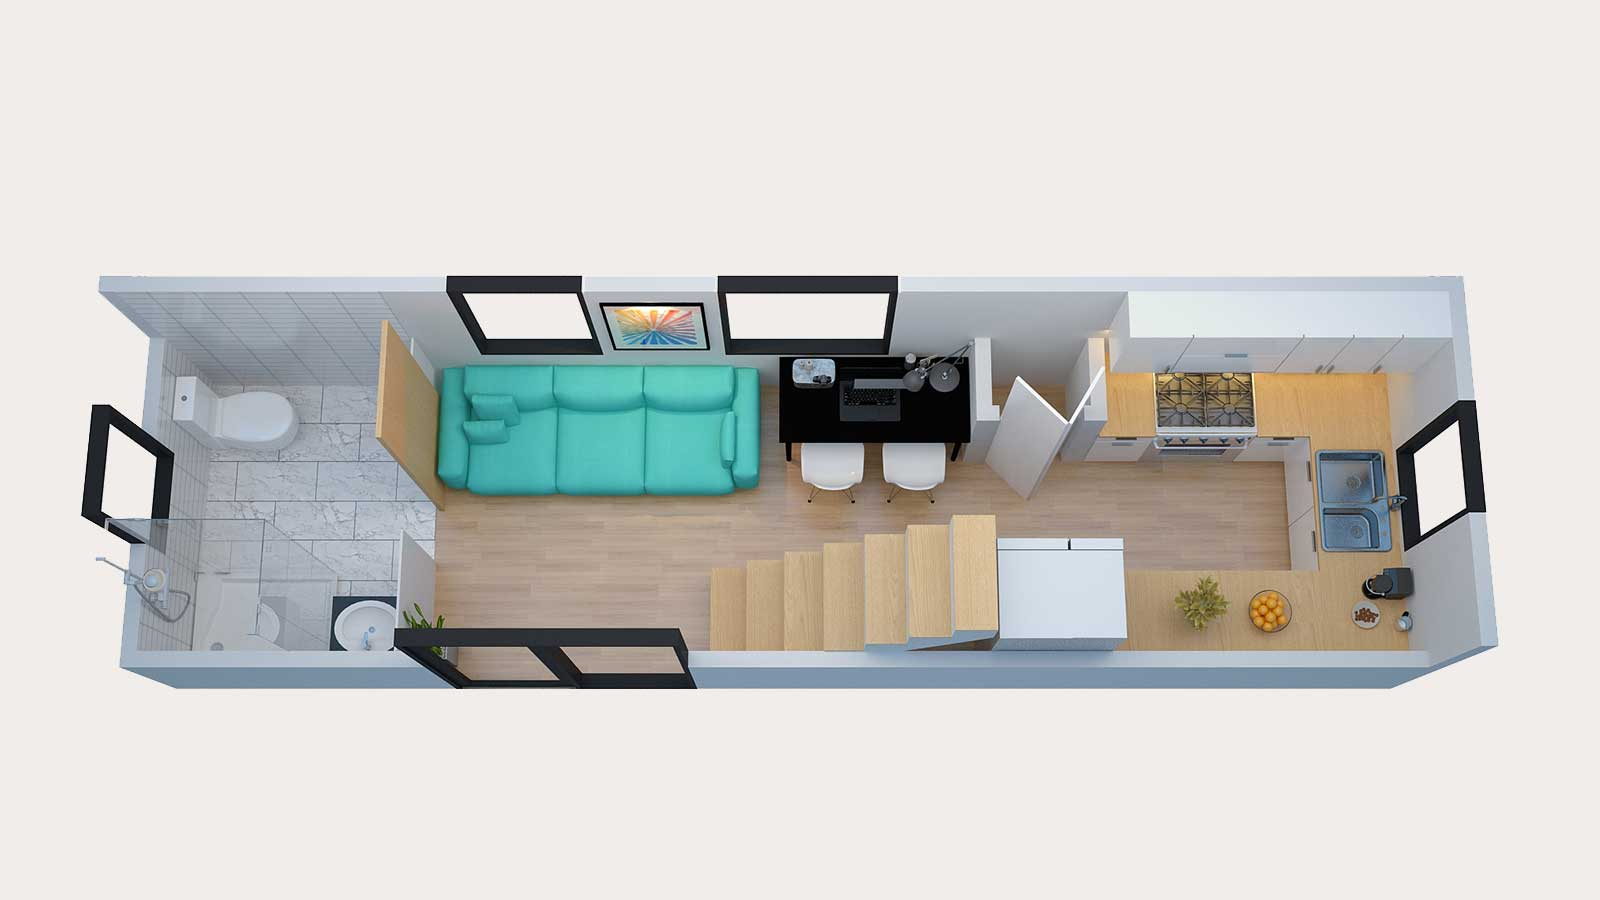 Floor plans of tiny home model